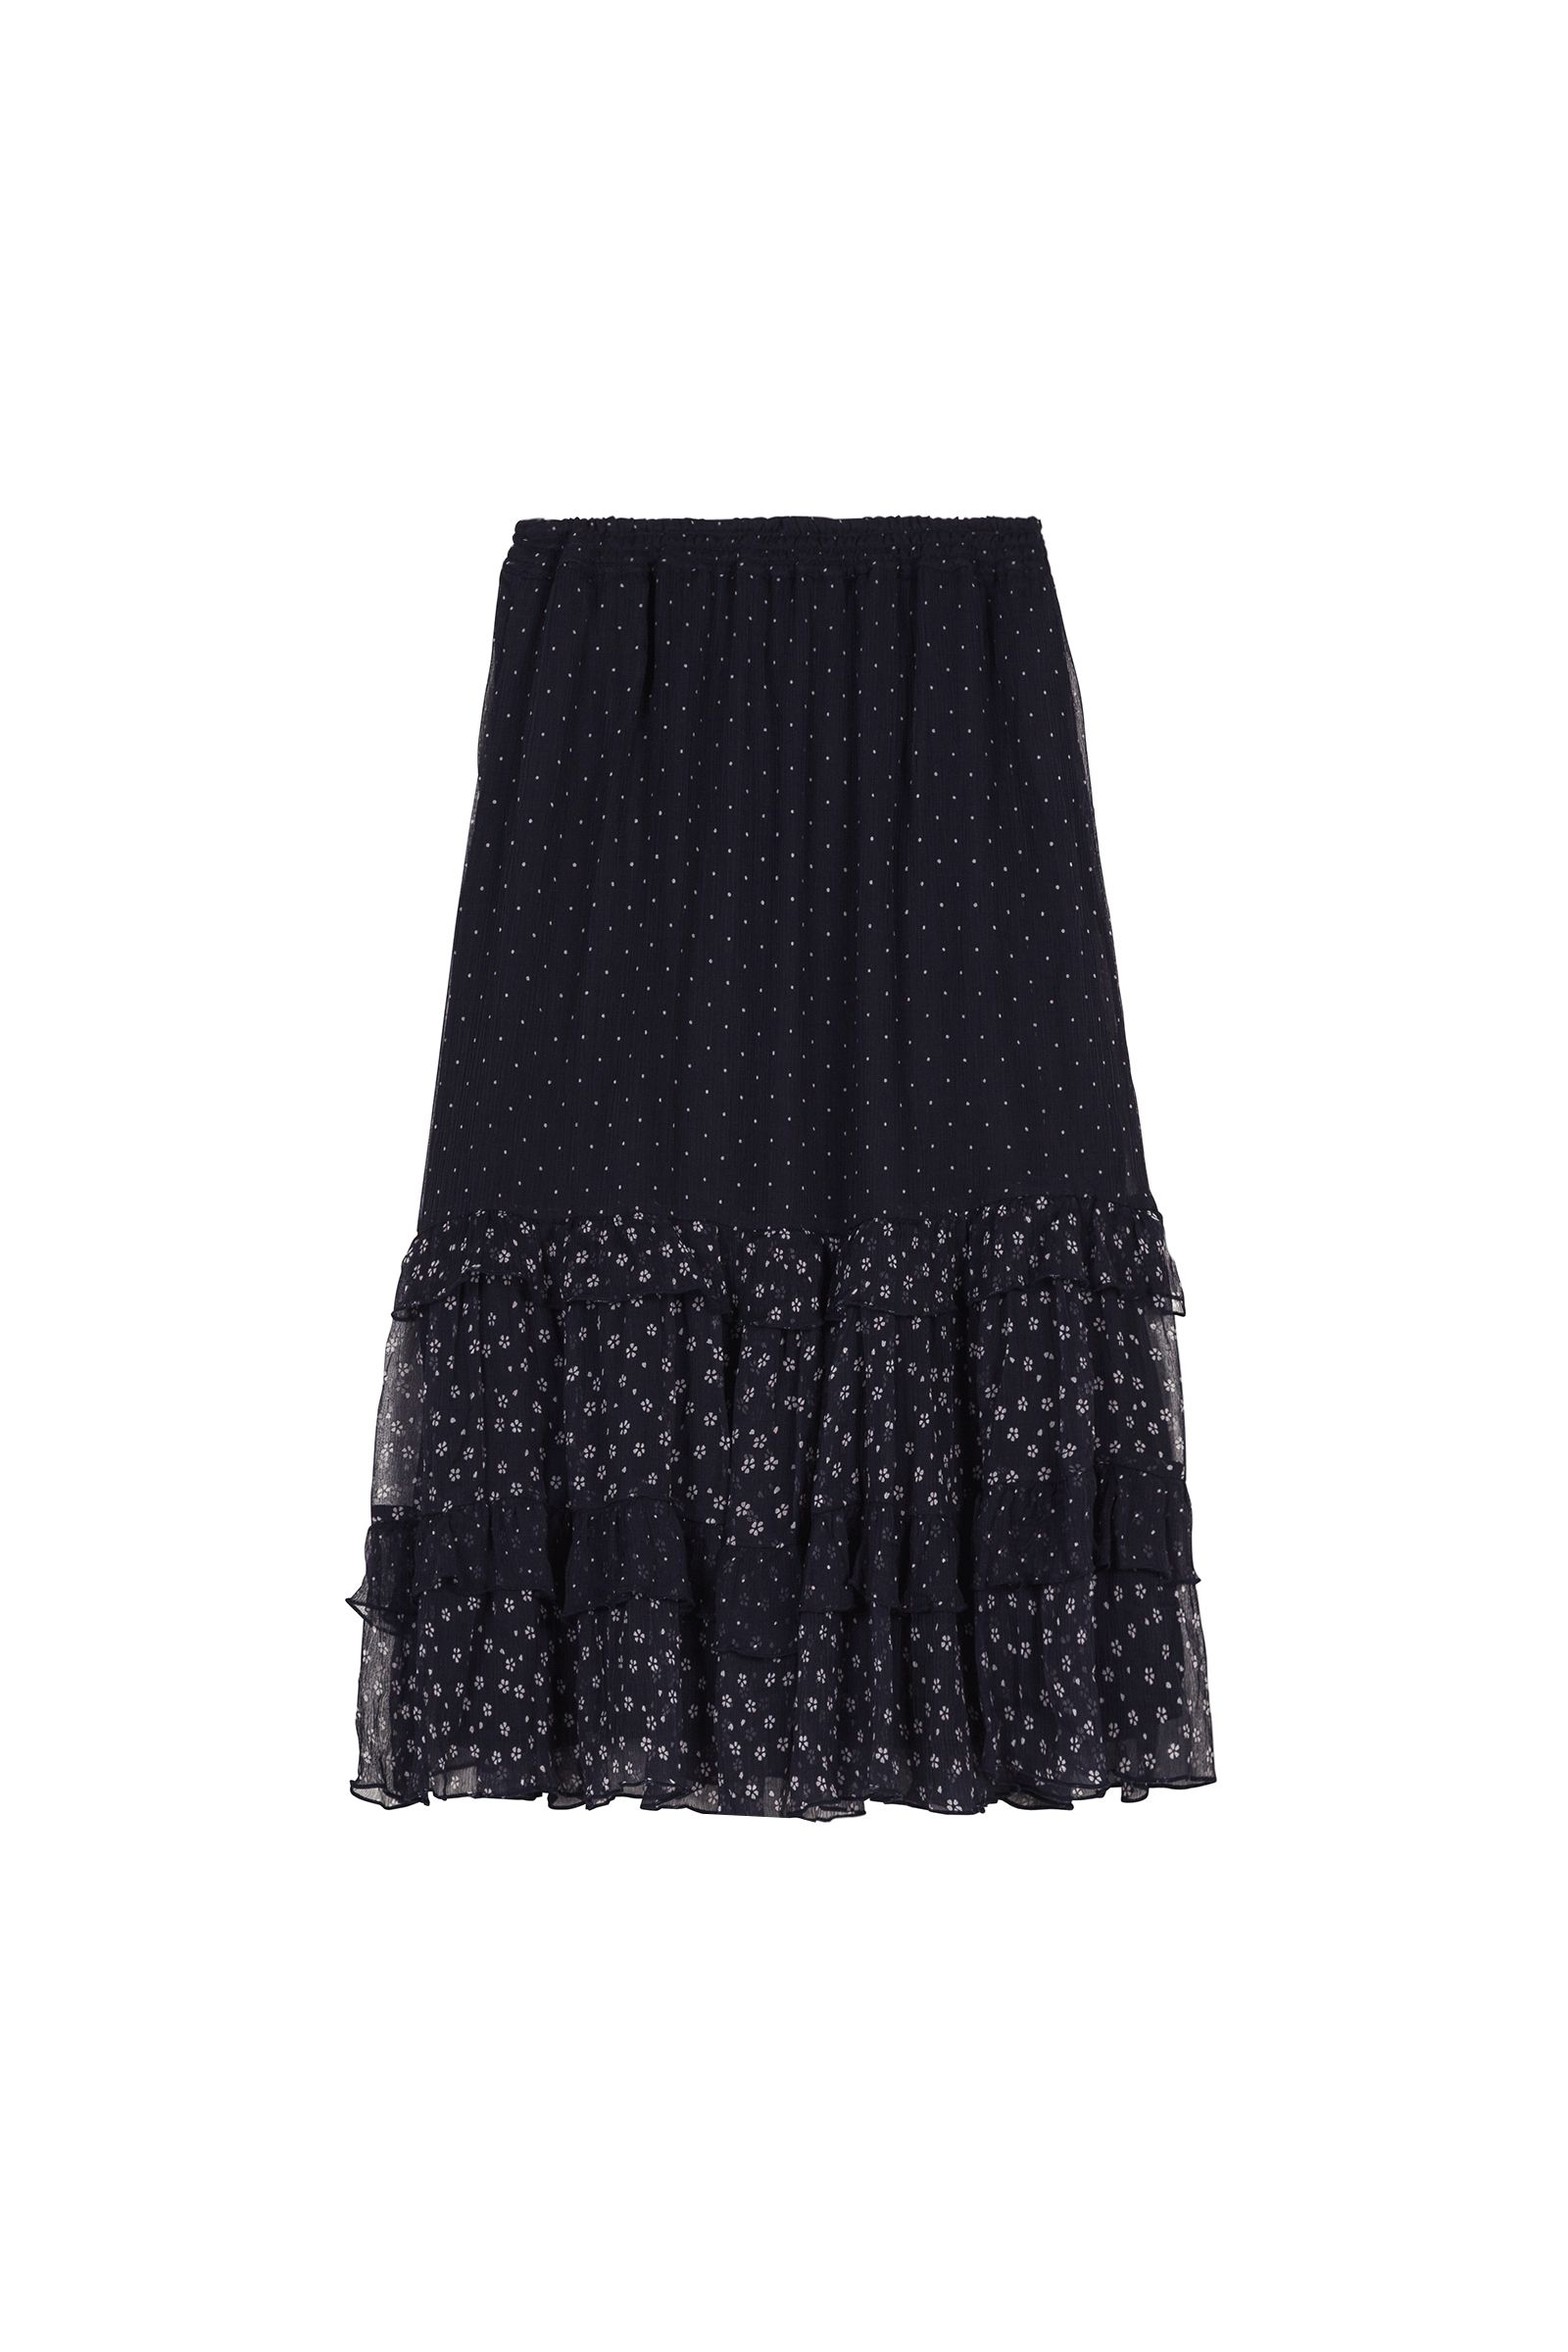 Image 4 du produit Jockey Mix Skirt